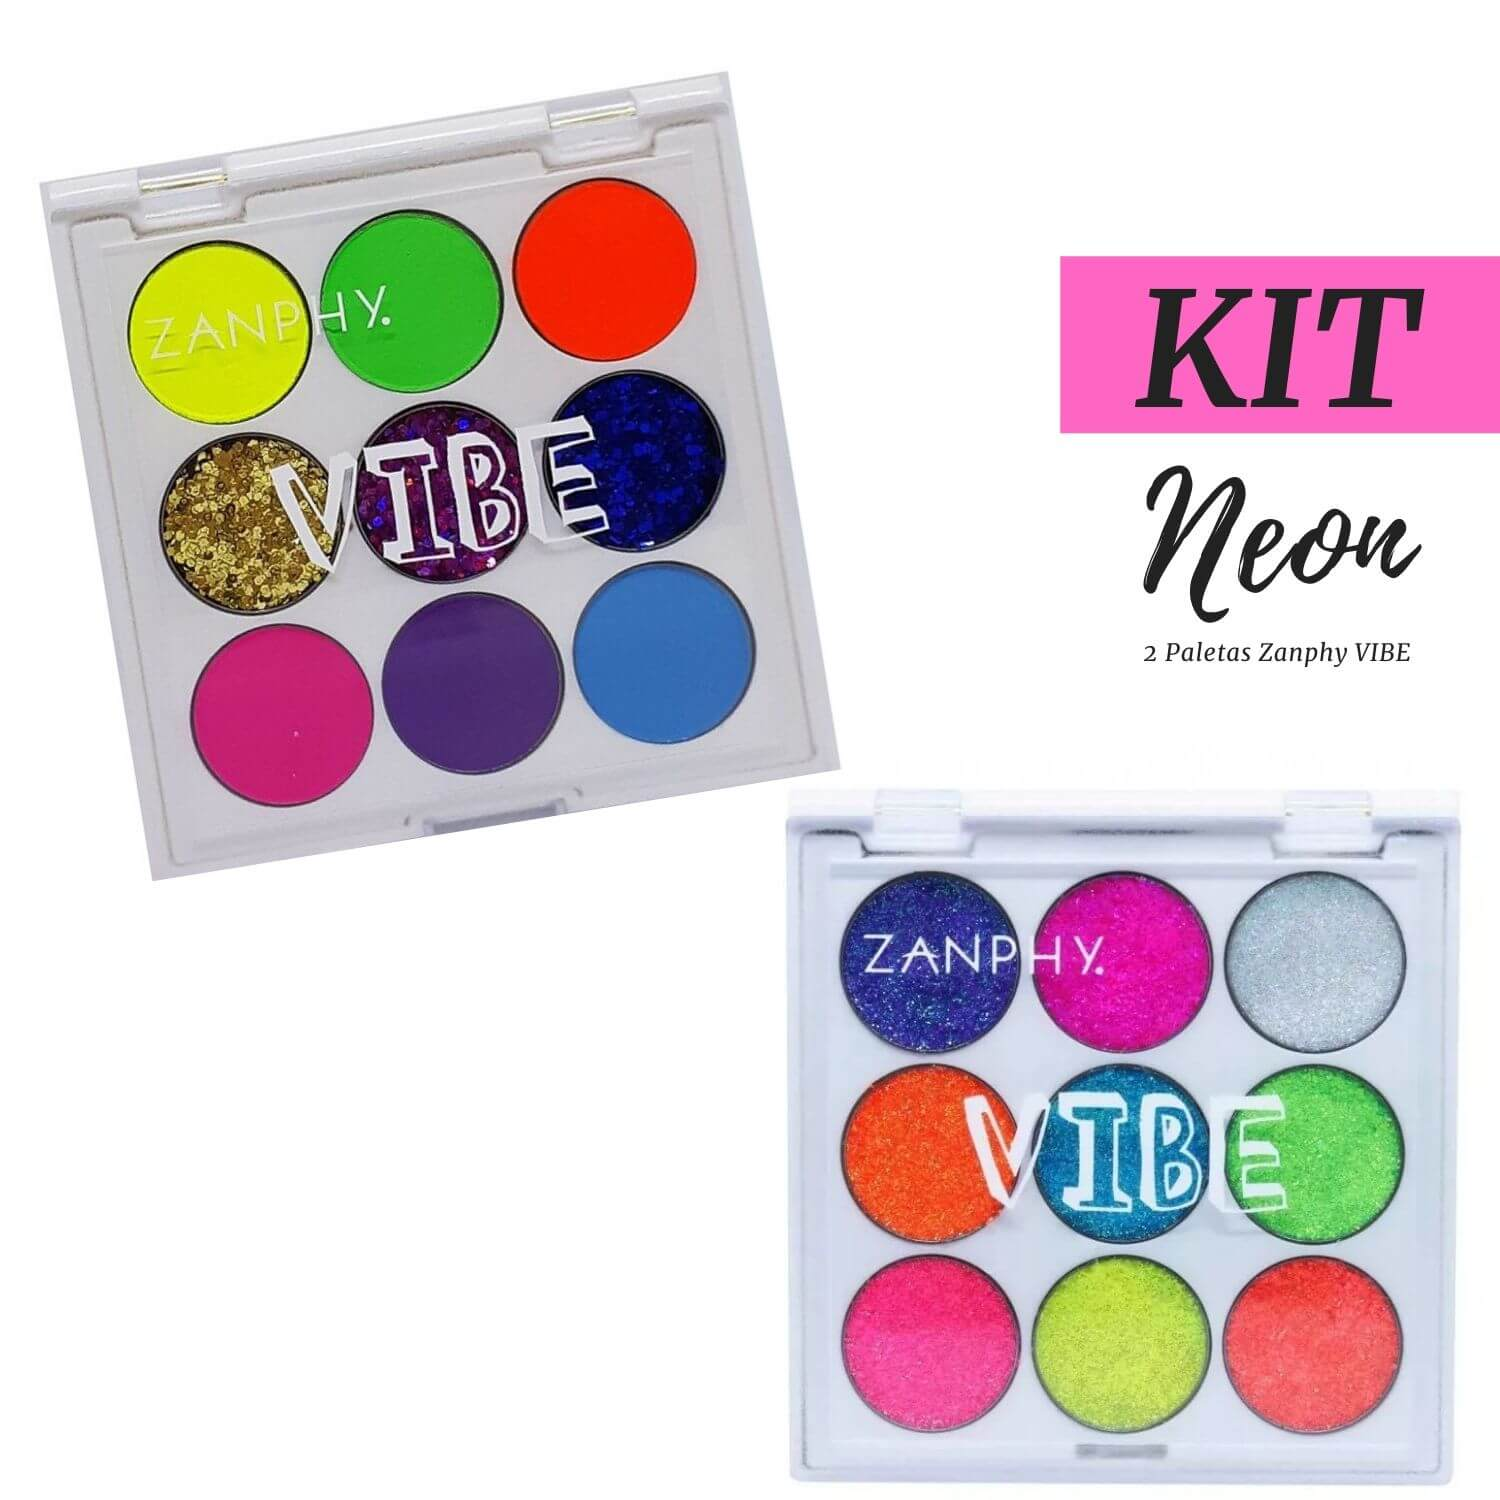 KIT Neon Zanphy